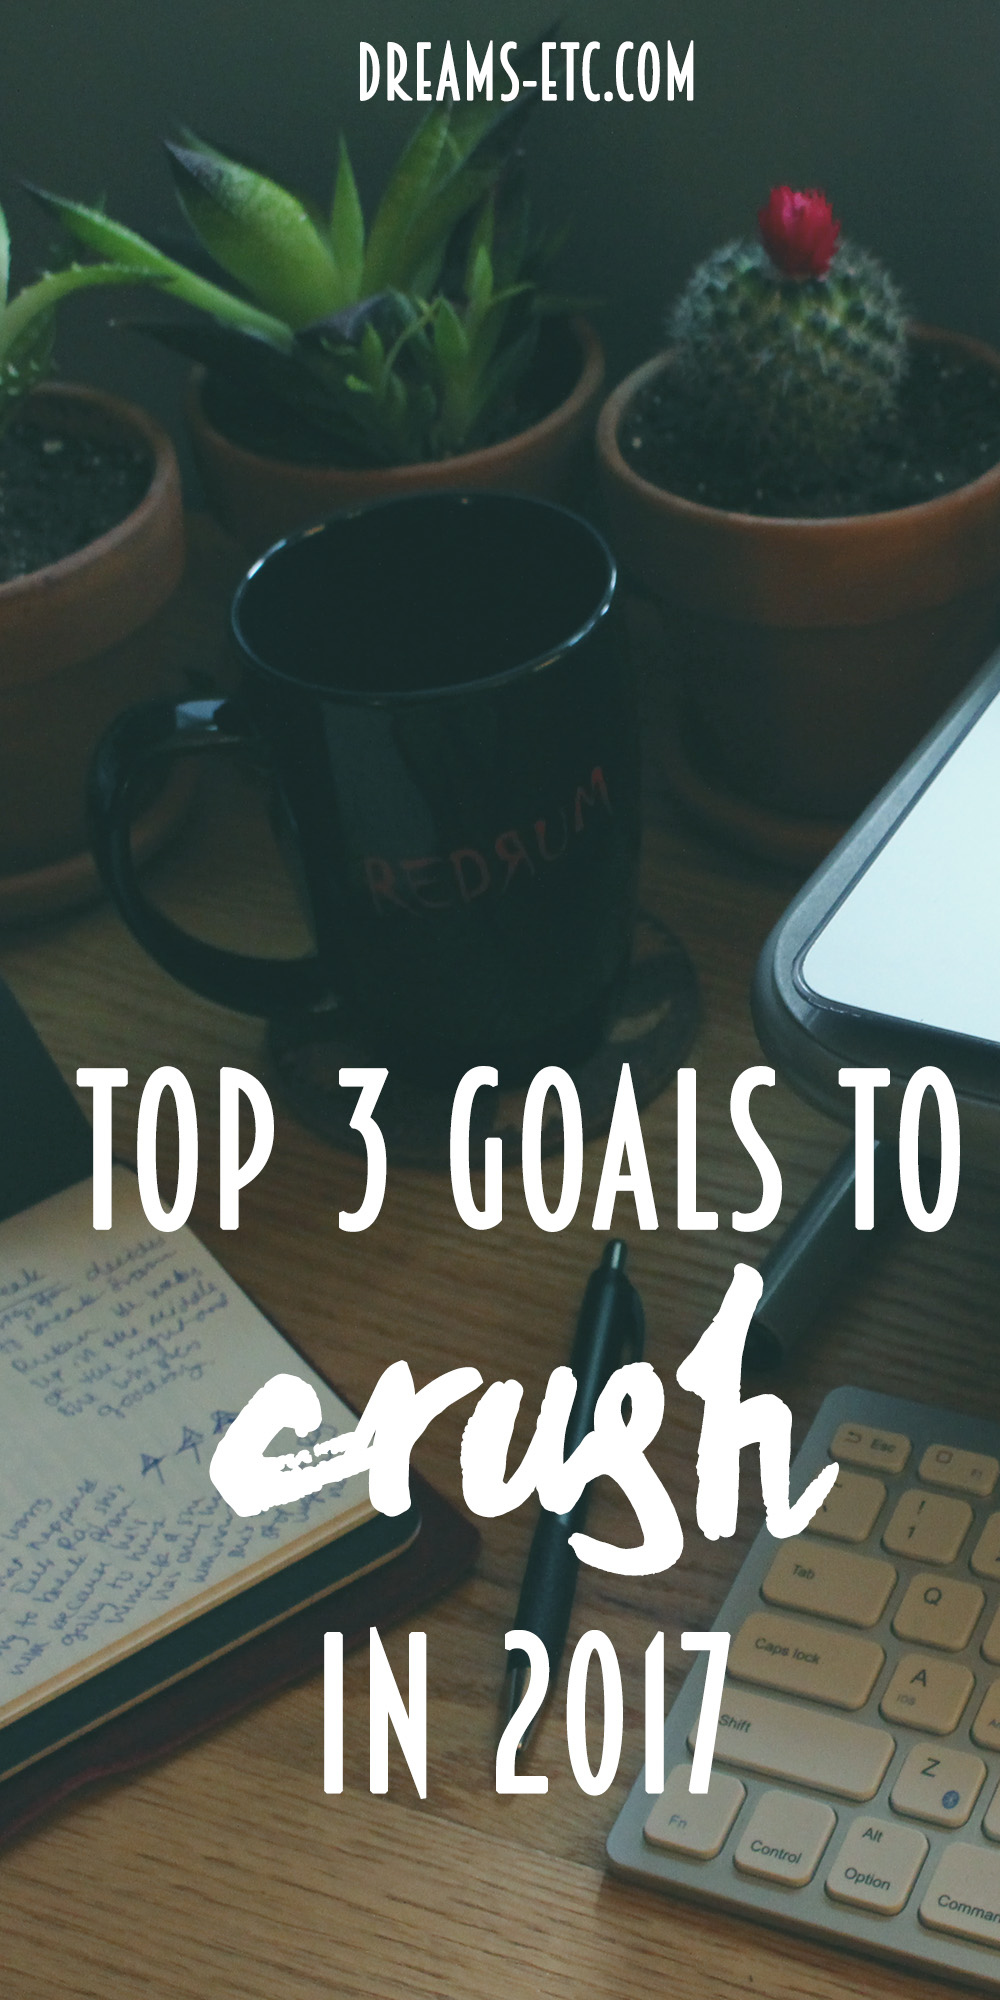 Let's go back to our roots with goal-setting. I shared my top 3 goals to crush in the last few months of 2017. Let's kick butt and redeem this year! // dreams-etc.com